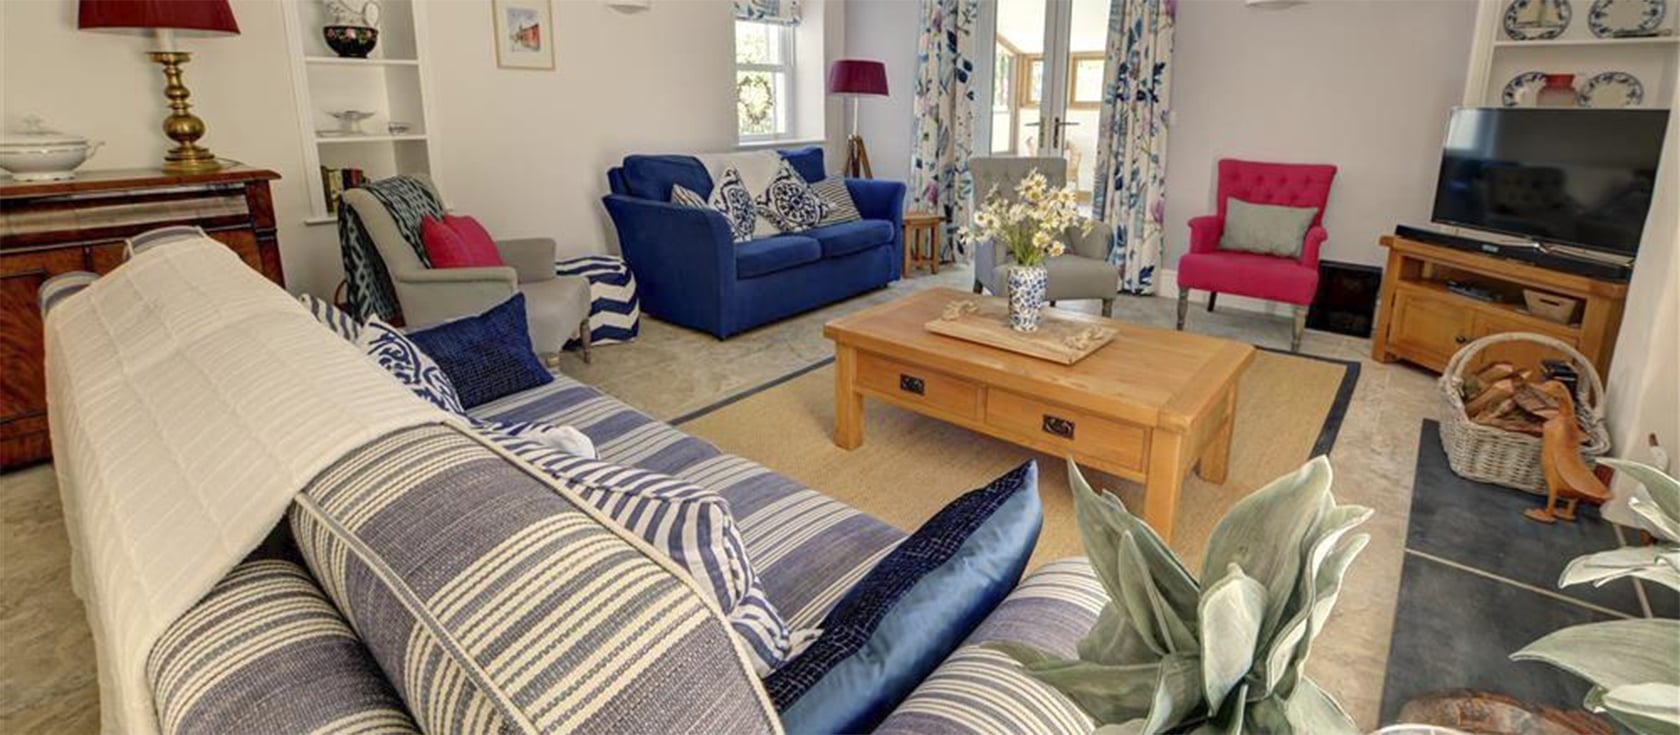 Croyde Country House, Croyde